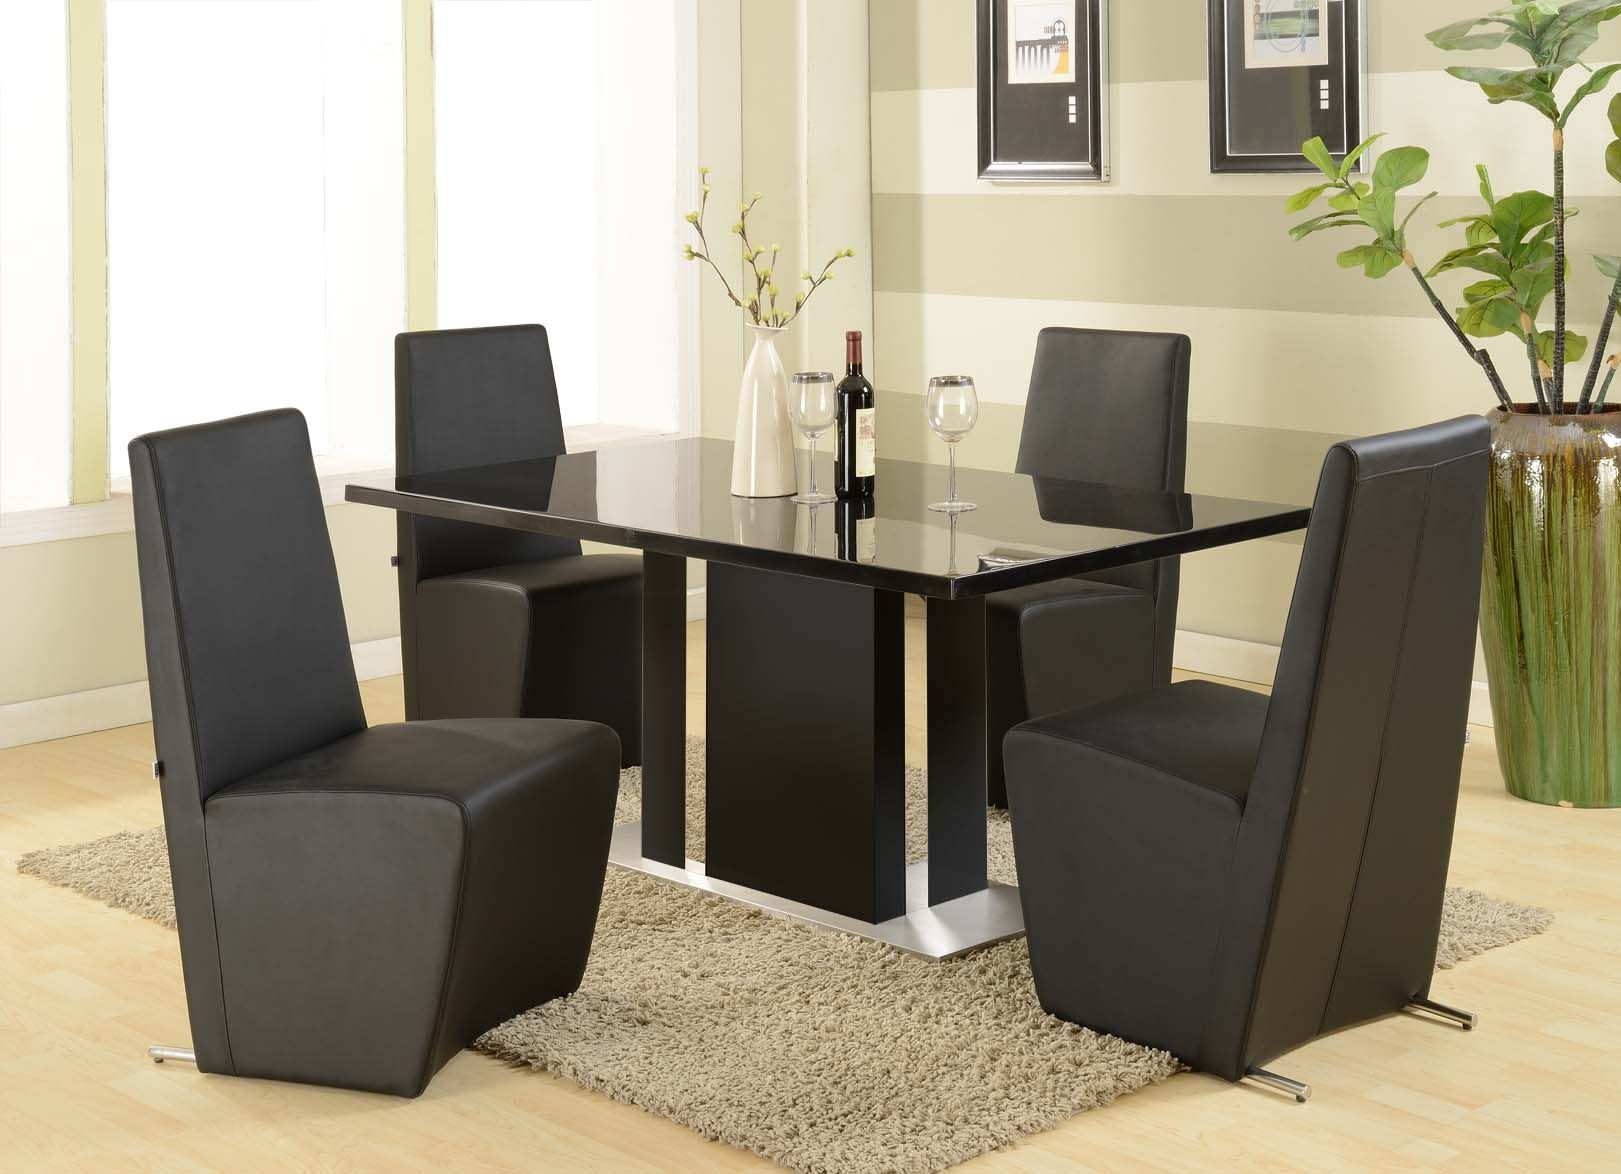 Dining Room, Modern Black Dining Room Chair Plus Brown Fur Carpet And Black  Modern Table: Winning Dining Room Chairs